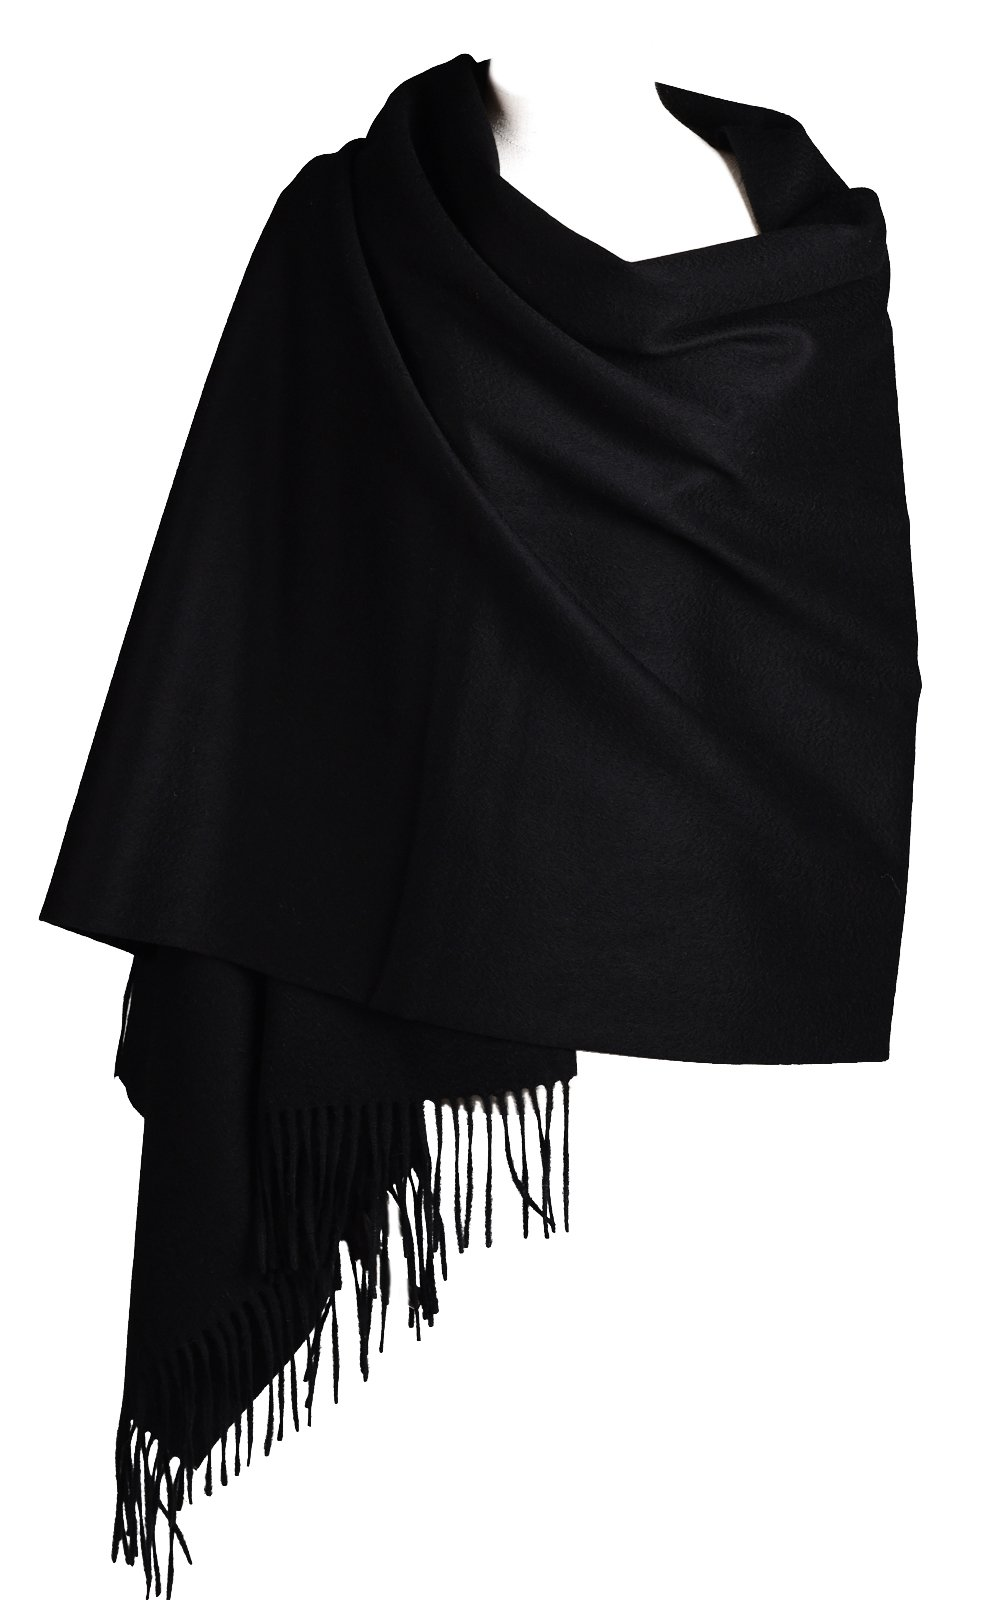 Cashmere Wrap Shawl Stole for Women, Winter Extra Large(79in x 28in) Wool Scarf, Black by KROWN CASHMERE